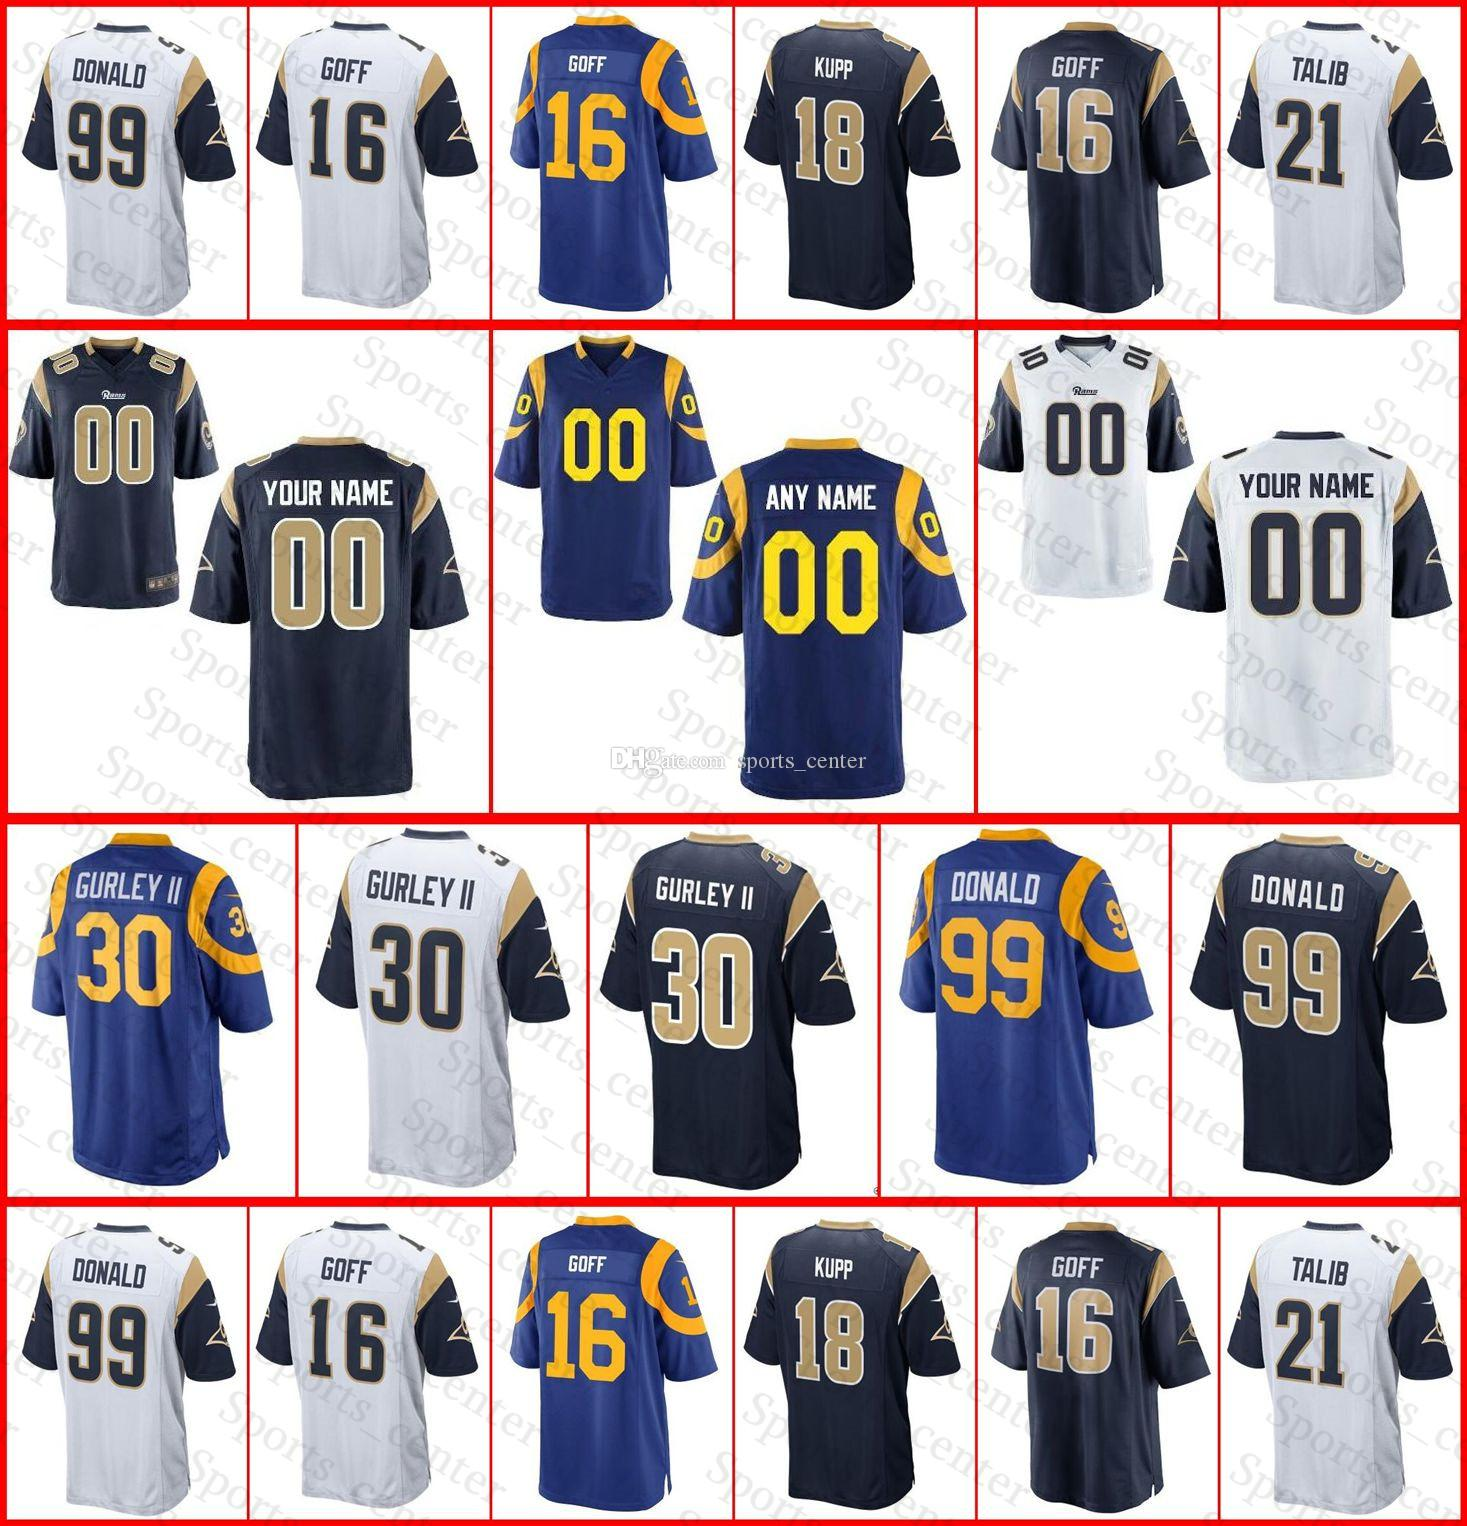 ... nike nfl los angeles rams top selling 874cc e1894  greece mens women  youth custom los angeles rams jersey 30 todd gurley ii 16 jared goff aaf31d333